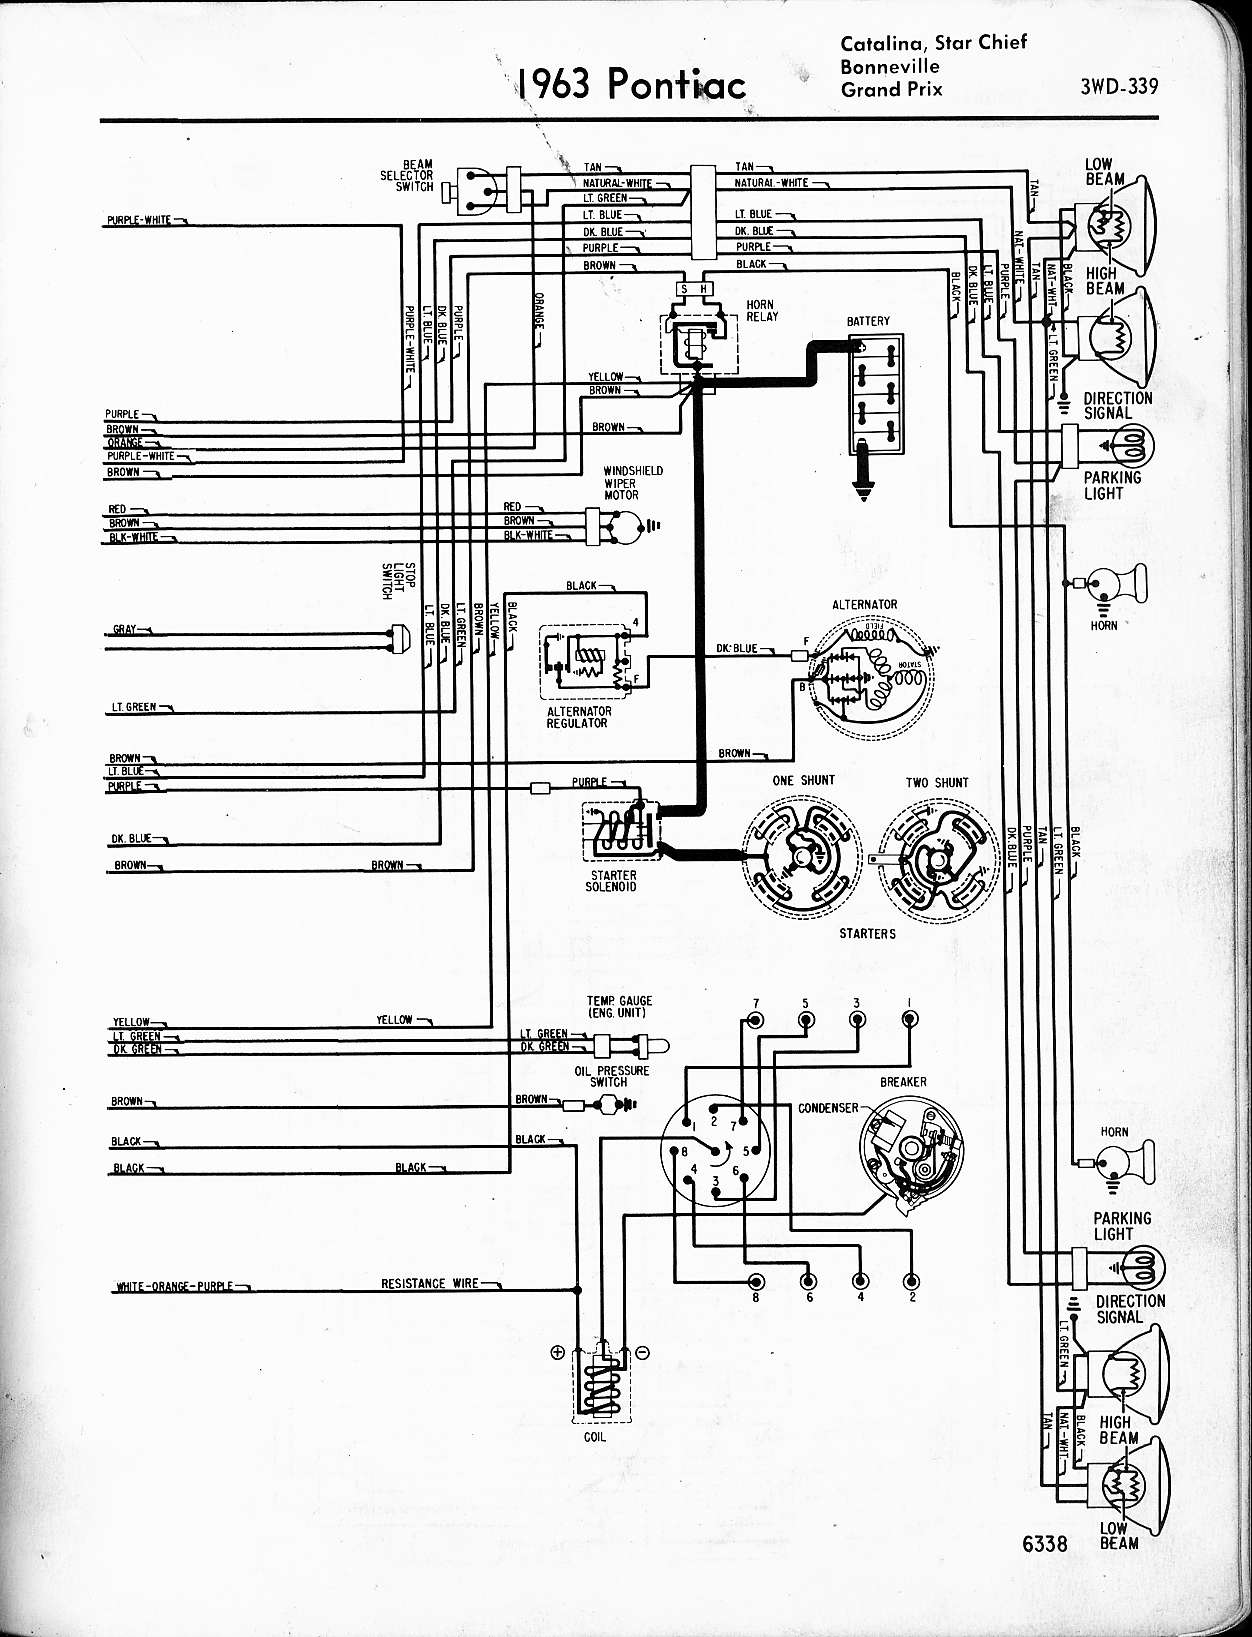 Ram Promaster Awd besides 12v Source Confusion 16106 besides 1970 Chevelle Steering Column Shift Linkage Diagram furthermore Dodge Dart Steering Colume Wiring Diagrams furthermore Firing order. on 1963 dodge dart wiring diagram